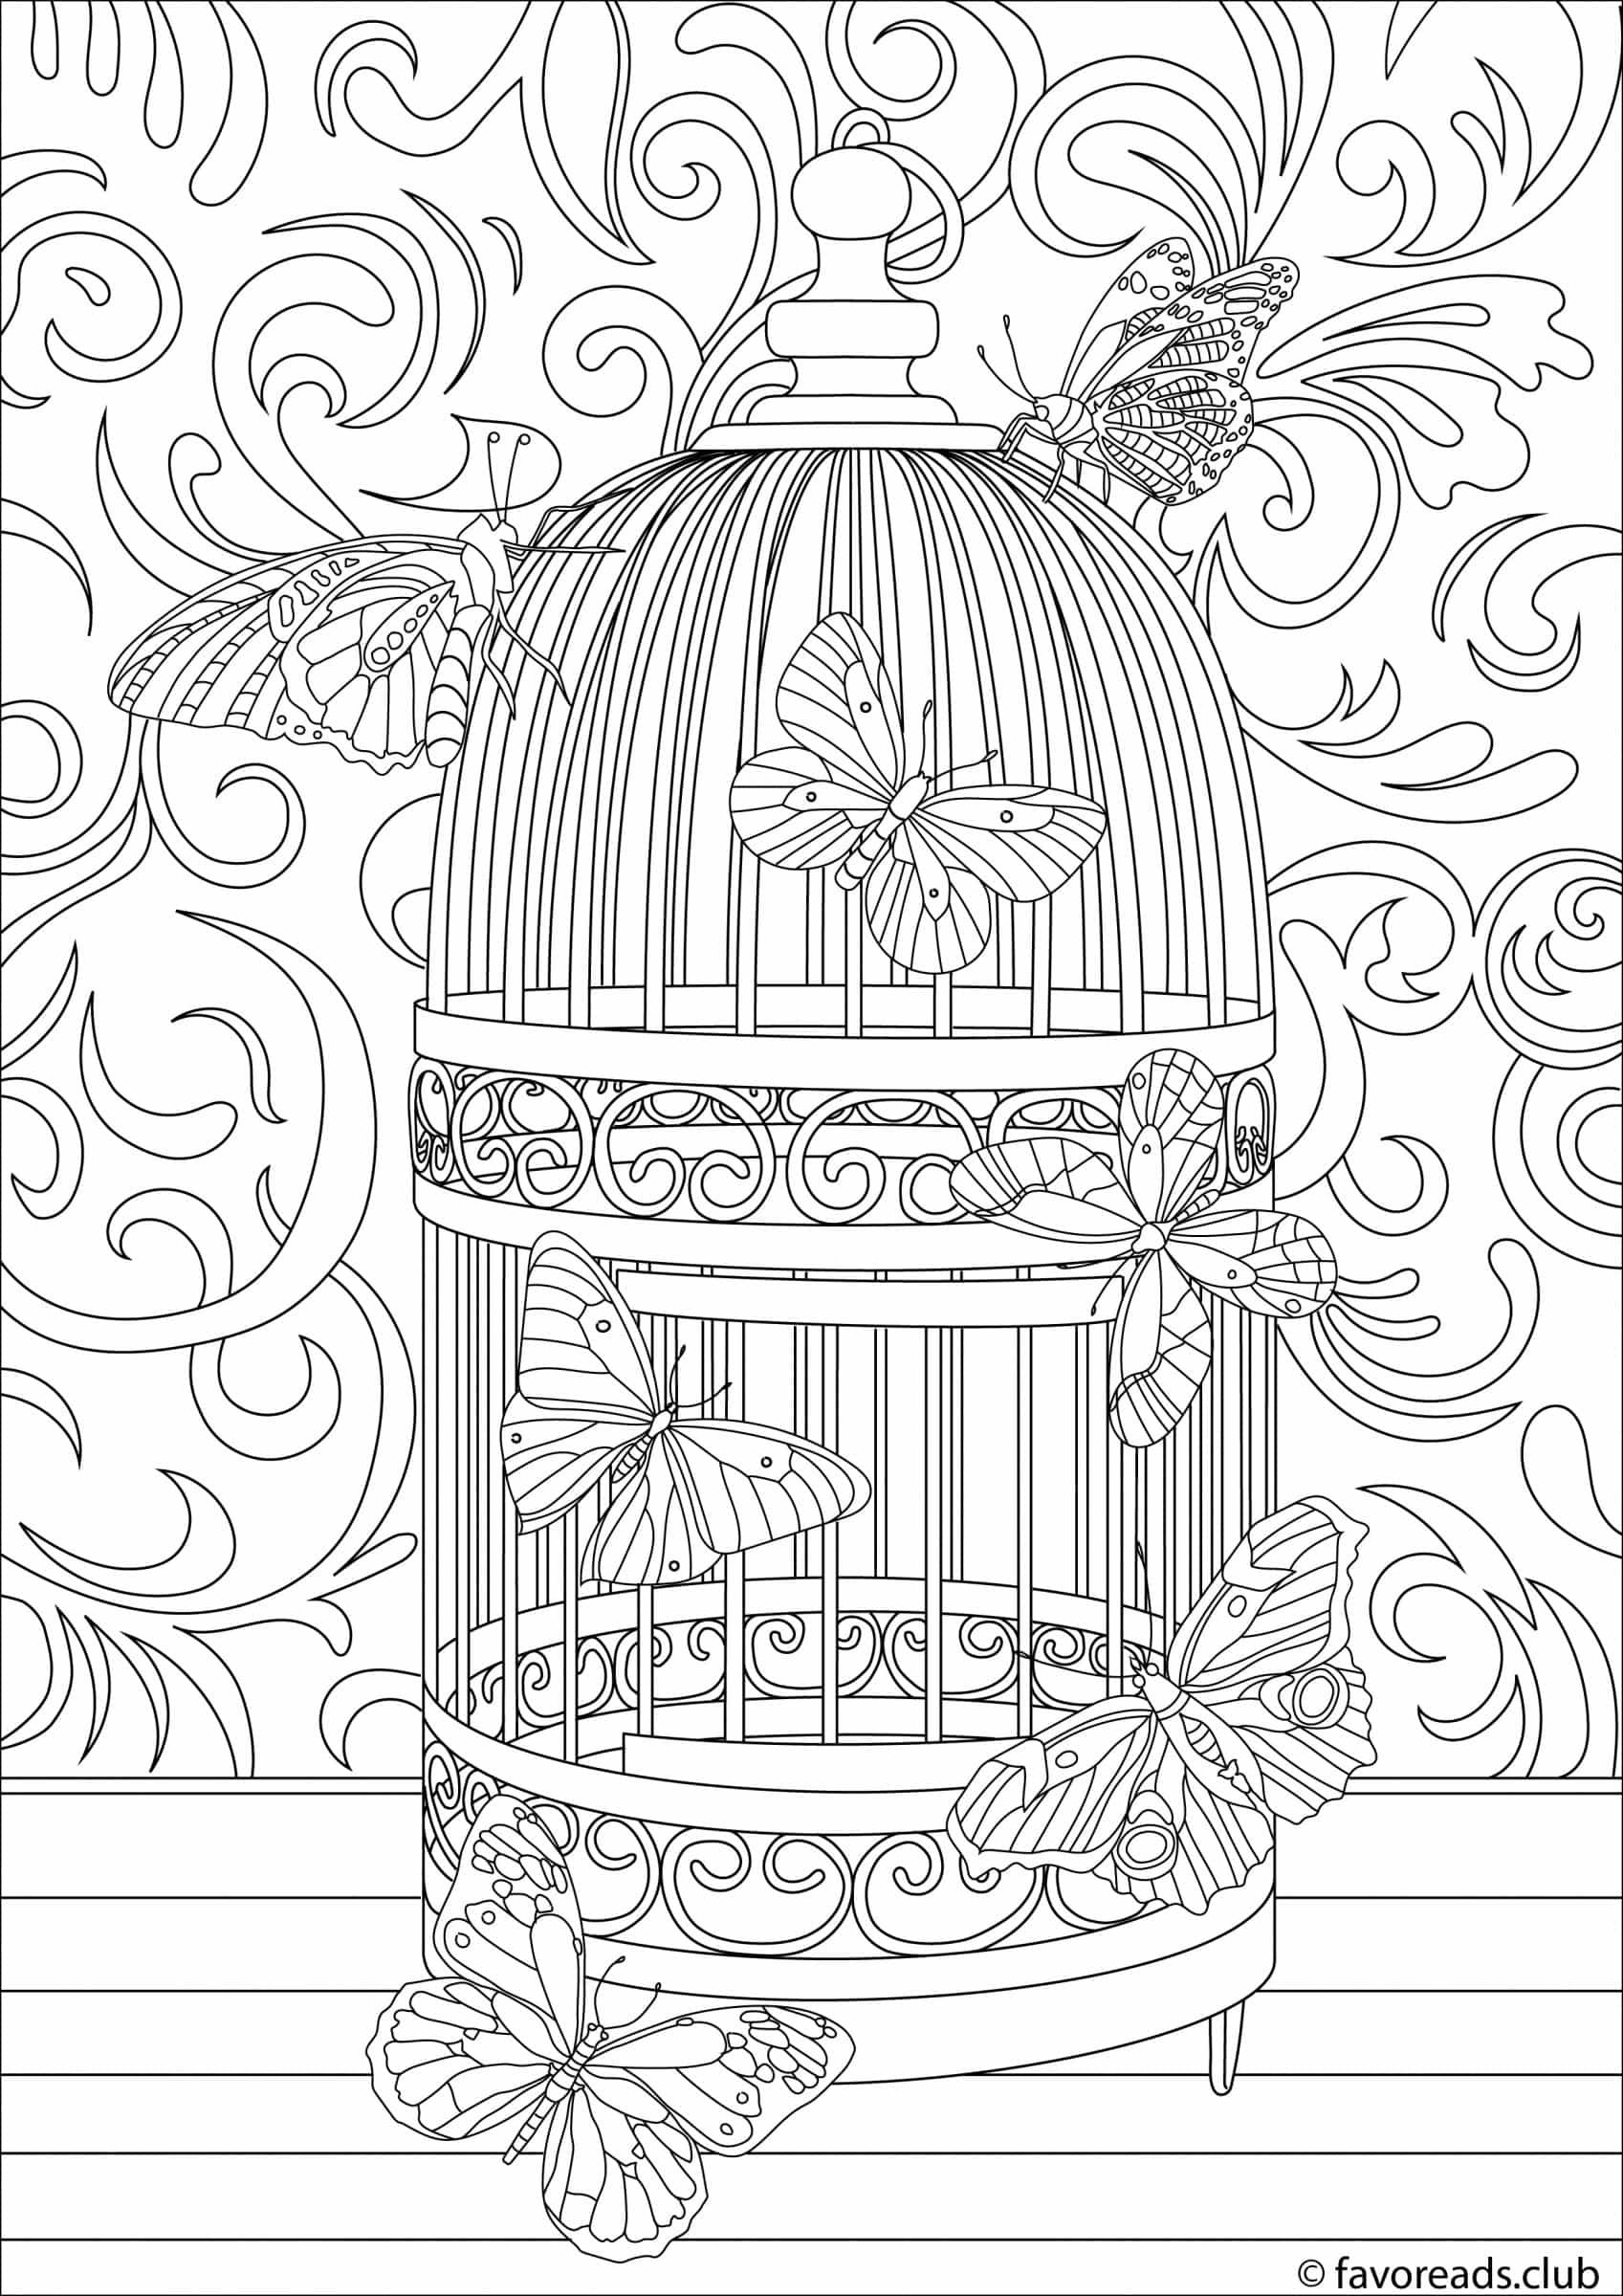 Birdcage Coloring Page Favoreads Zentangles Adult Colouring